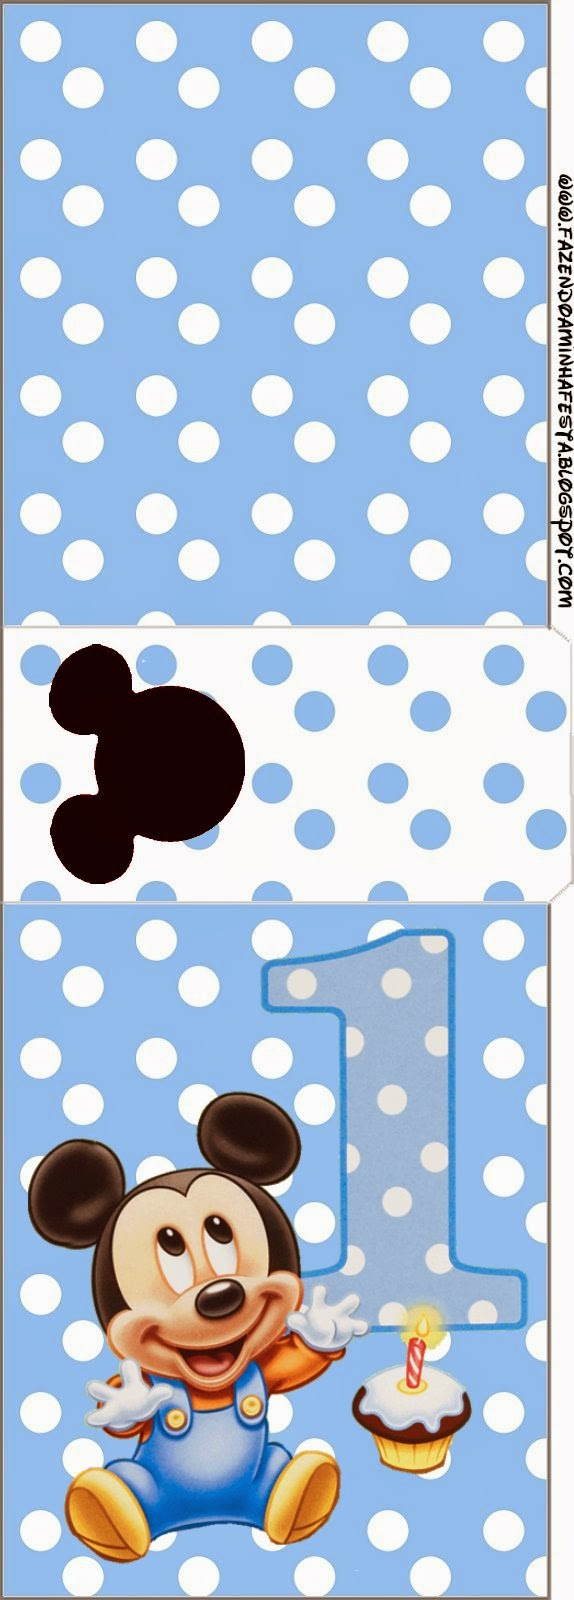 Tic Tac labels for a  First Year of Mickey with Polka Dots.